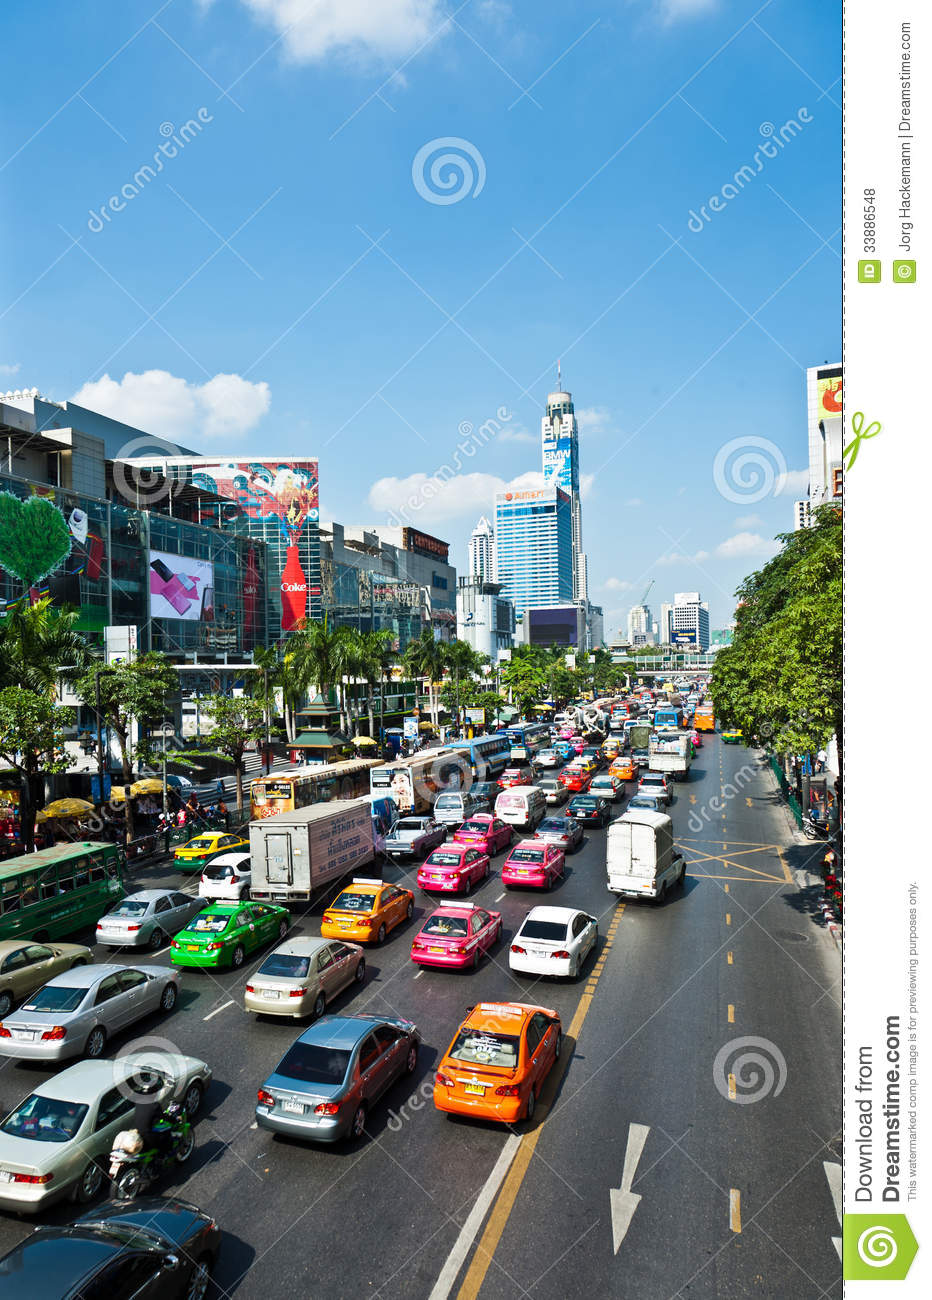 traffic jams in bangkok essay Things to do essay things to  7 things to do in bangkok the city of bangkok is constantly teeming with relentless activity, from traffic jams that make london.